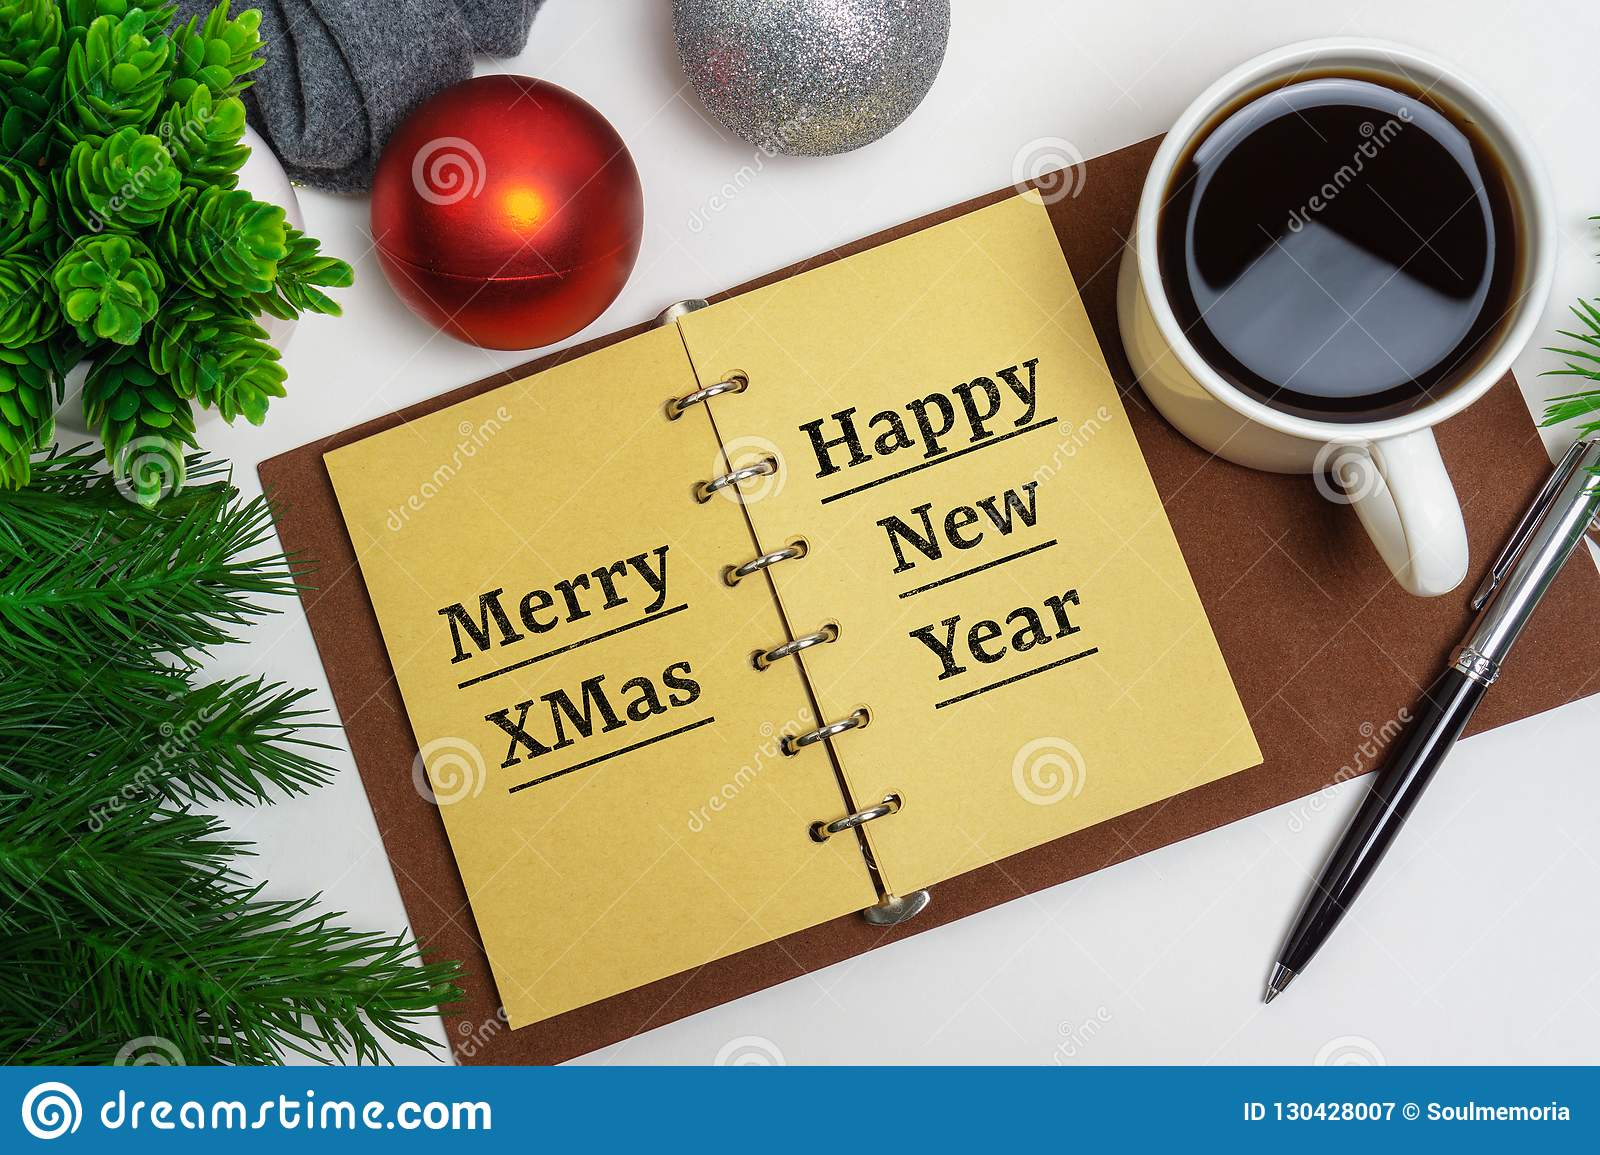 Christmas and Happy New Year on notepad with coffee and Christmas decorations.